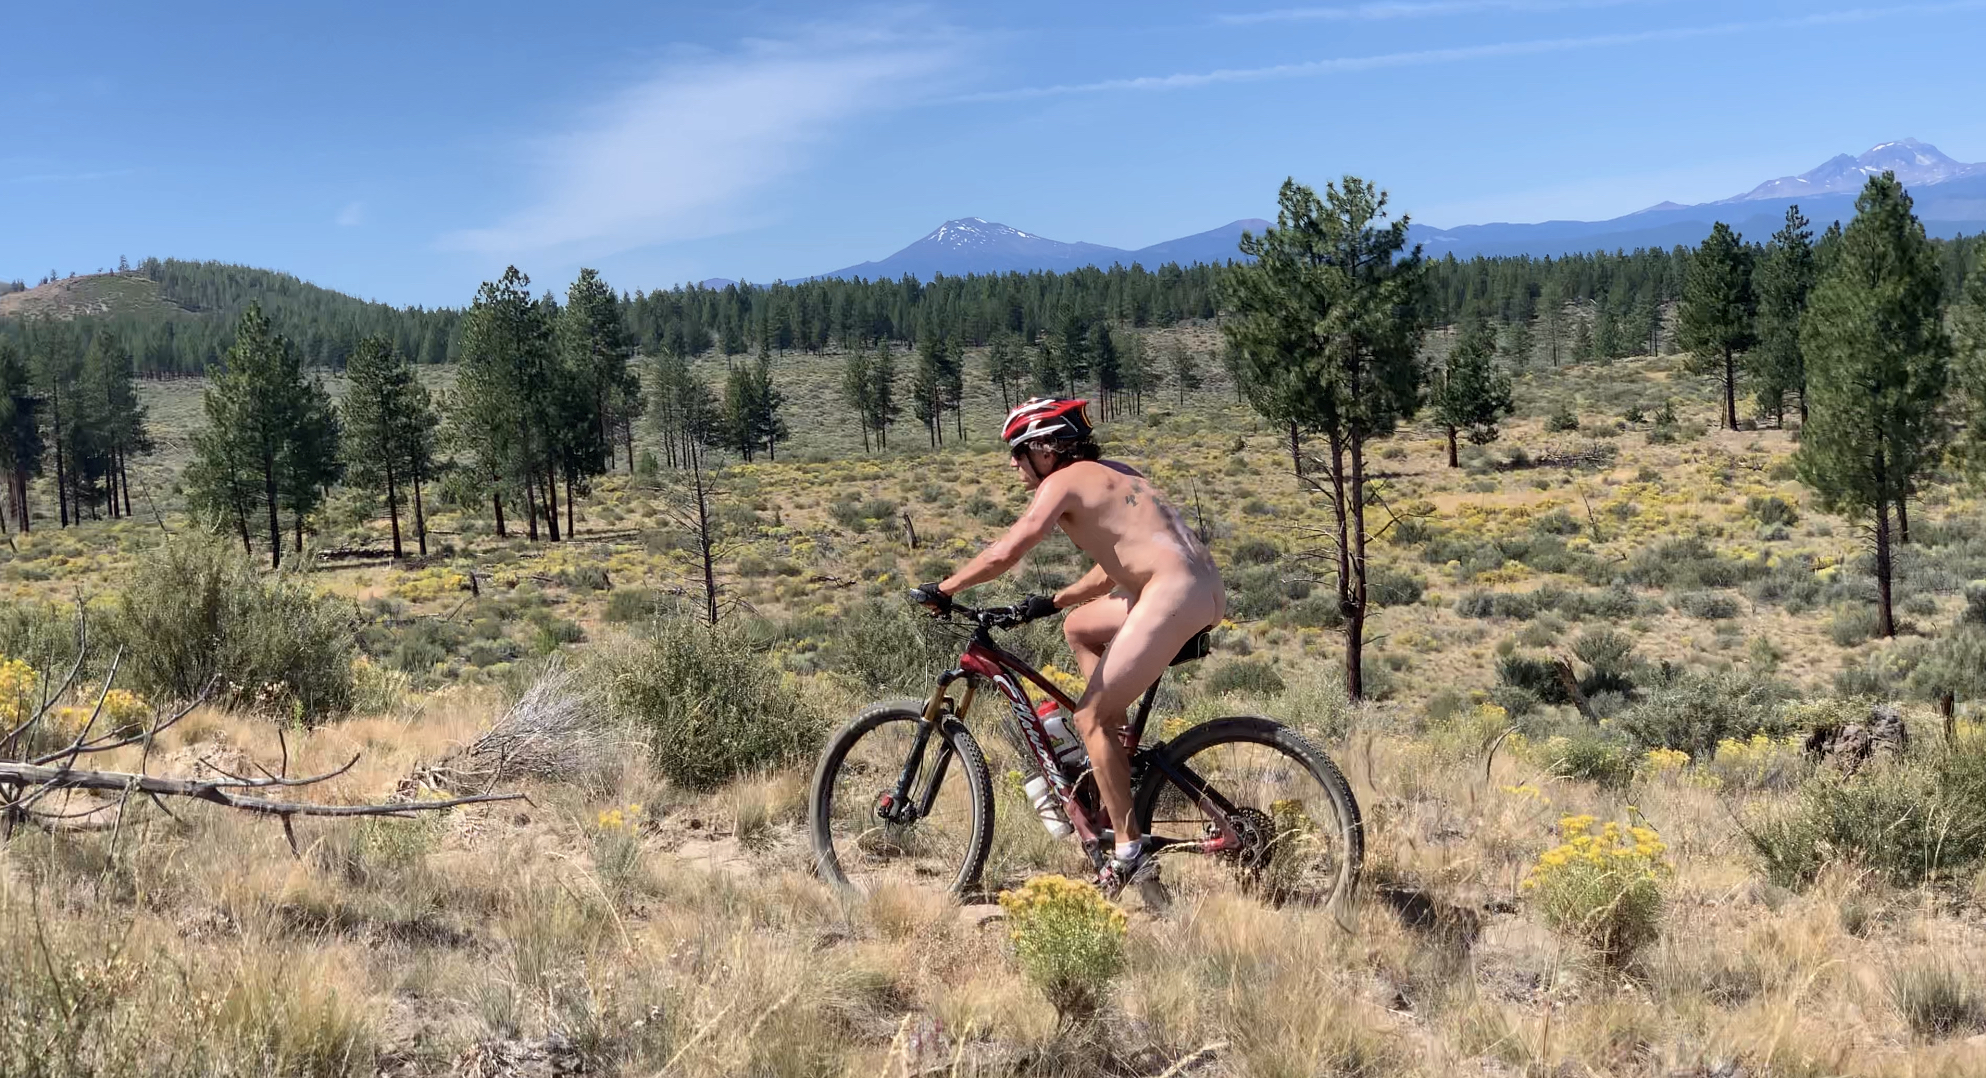 Man rides a mountain bike naked